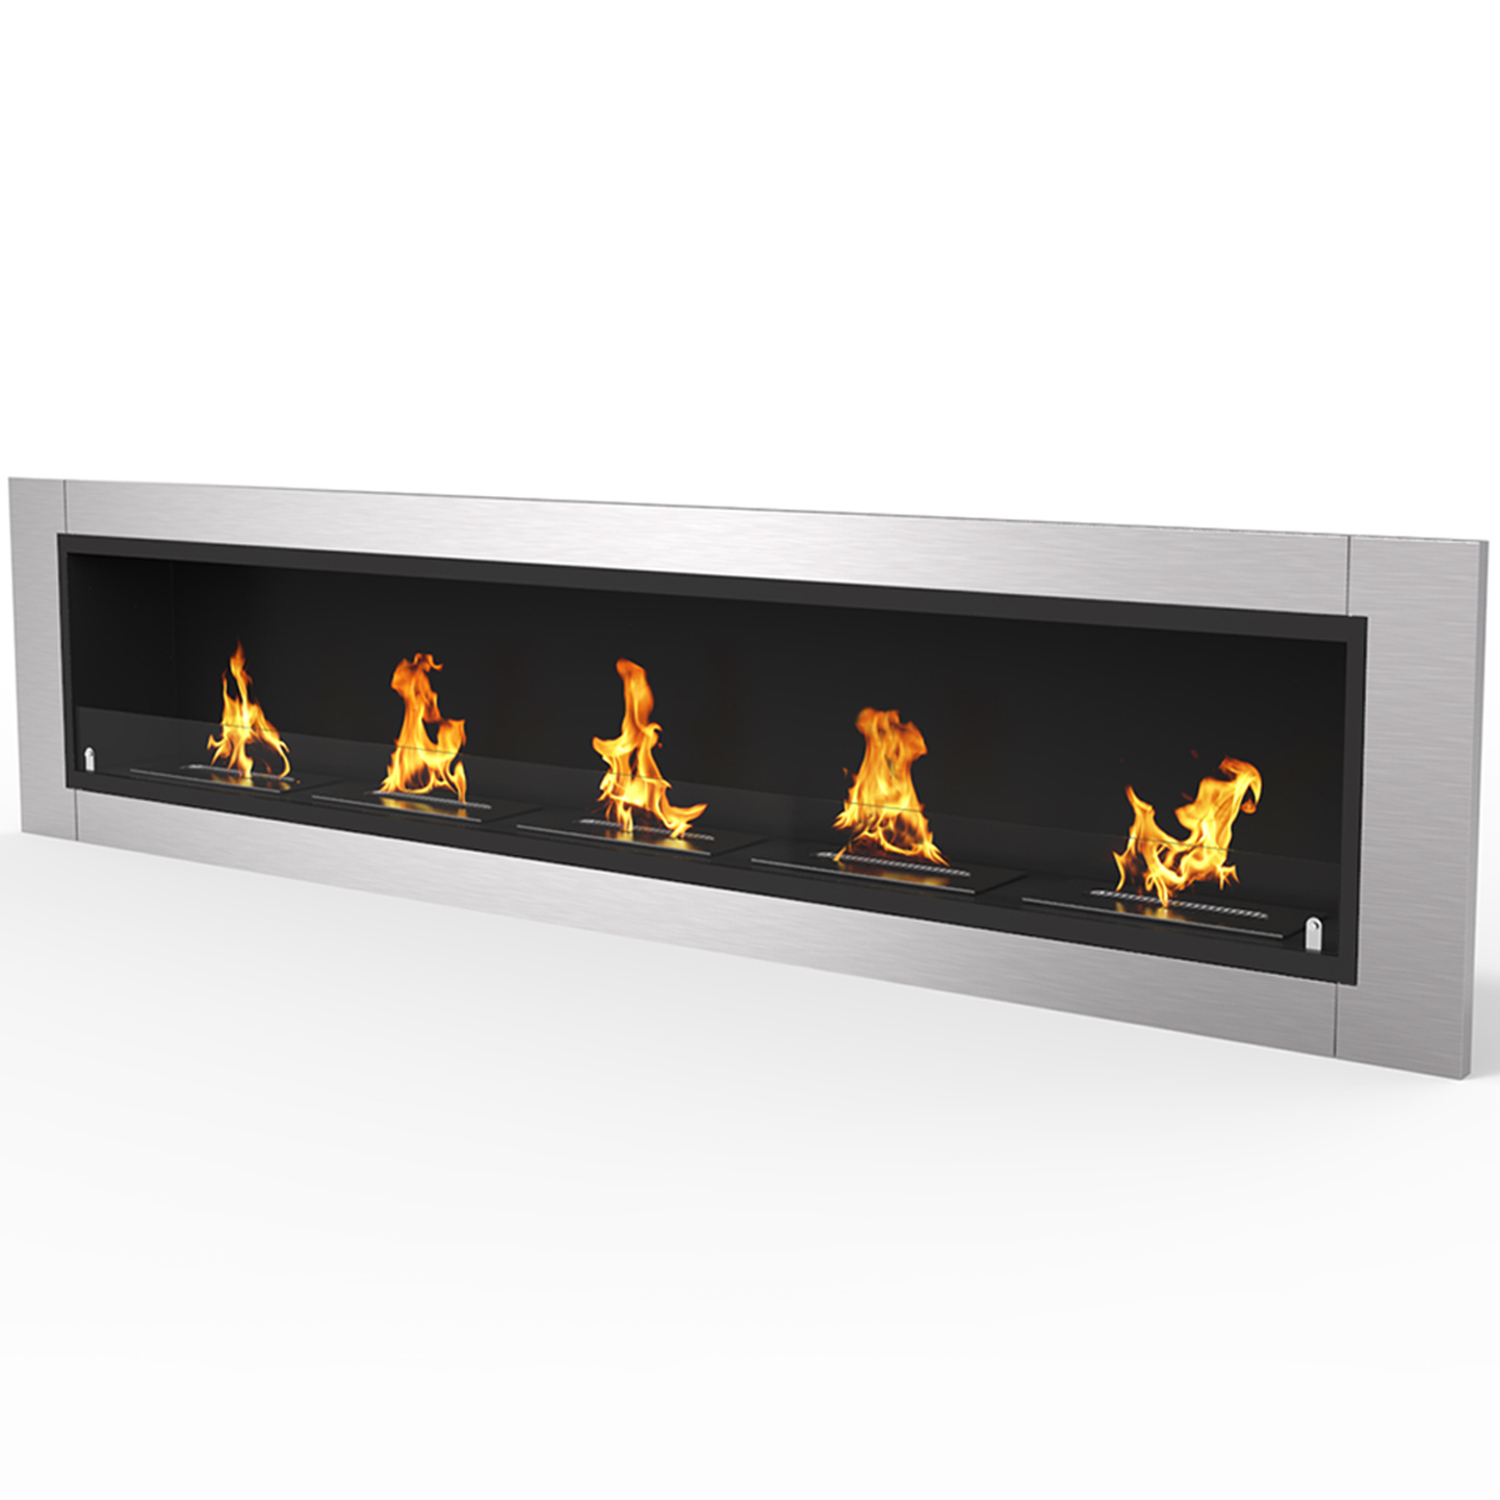 mounted bio insert amazon home with fireplace three homcom kitchen wall burners ethanol ca dp